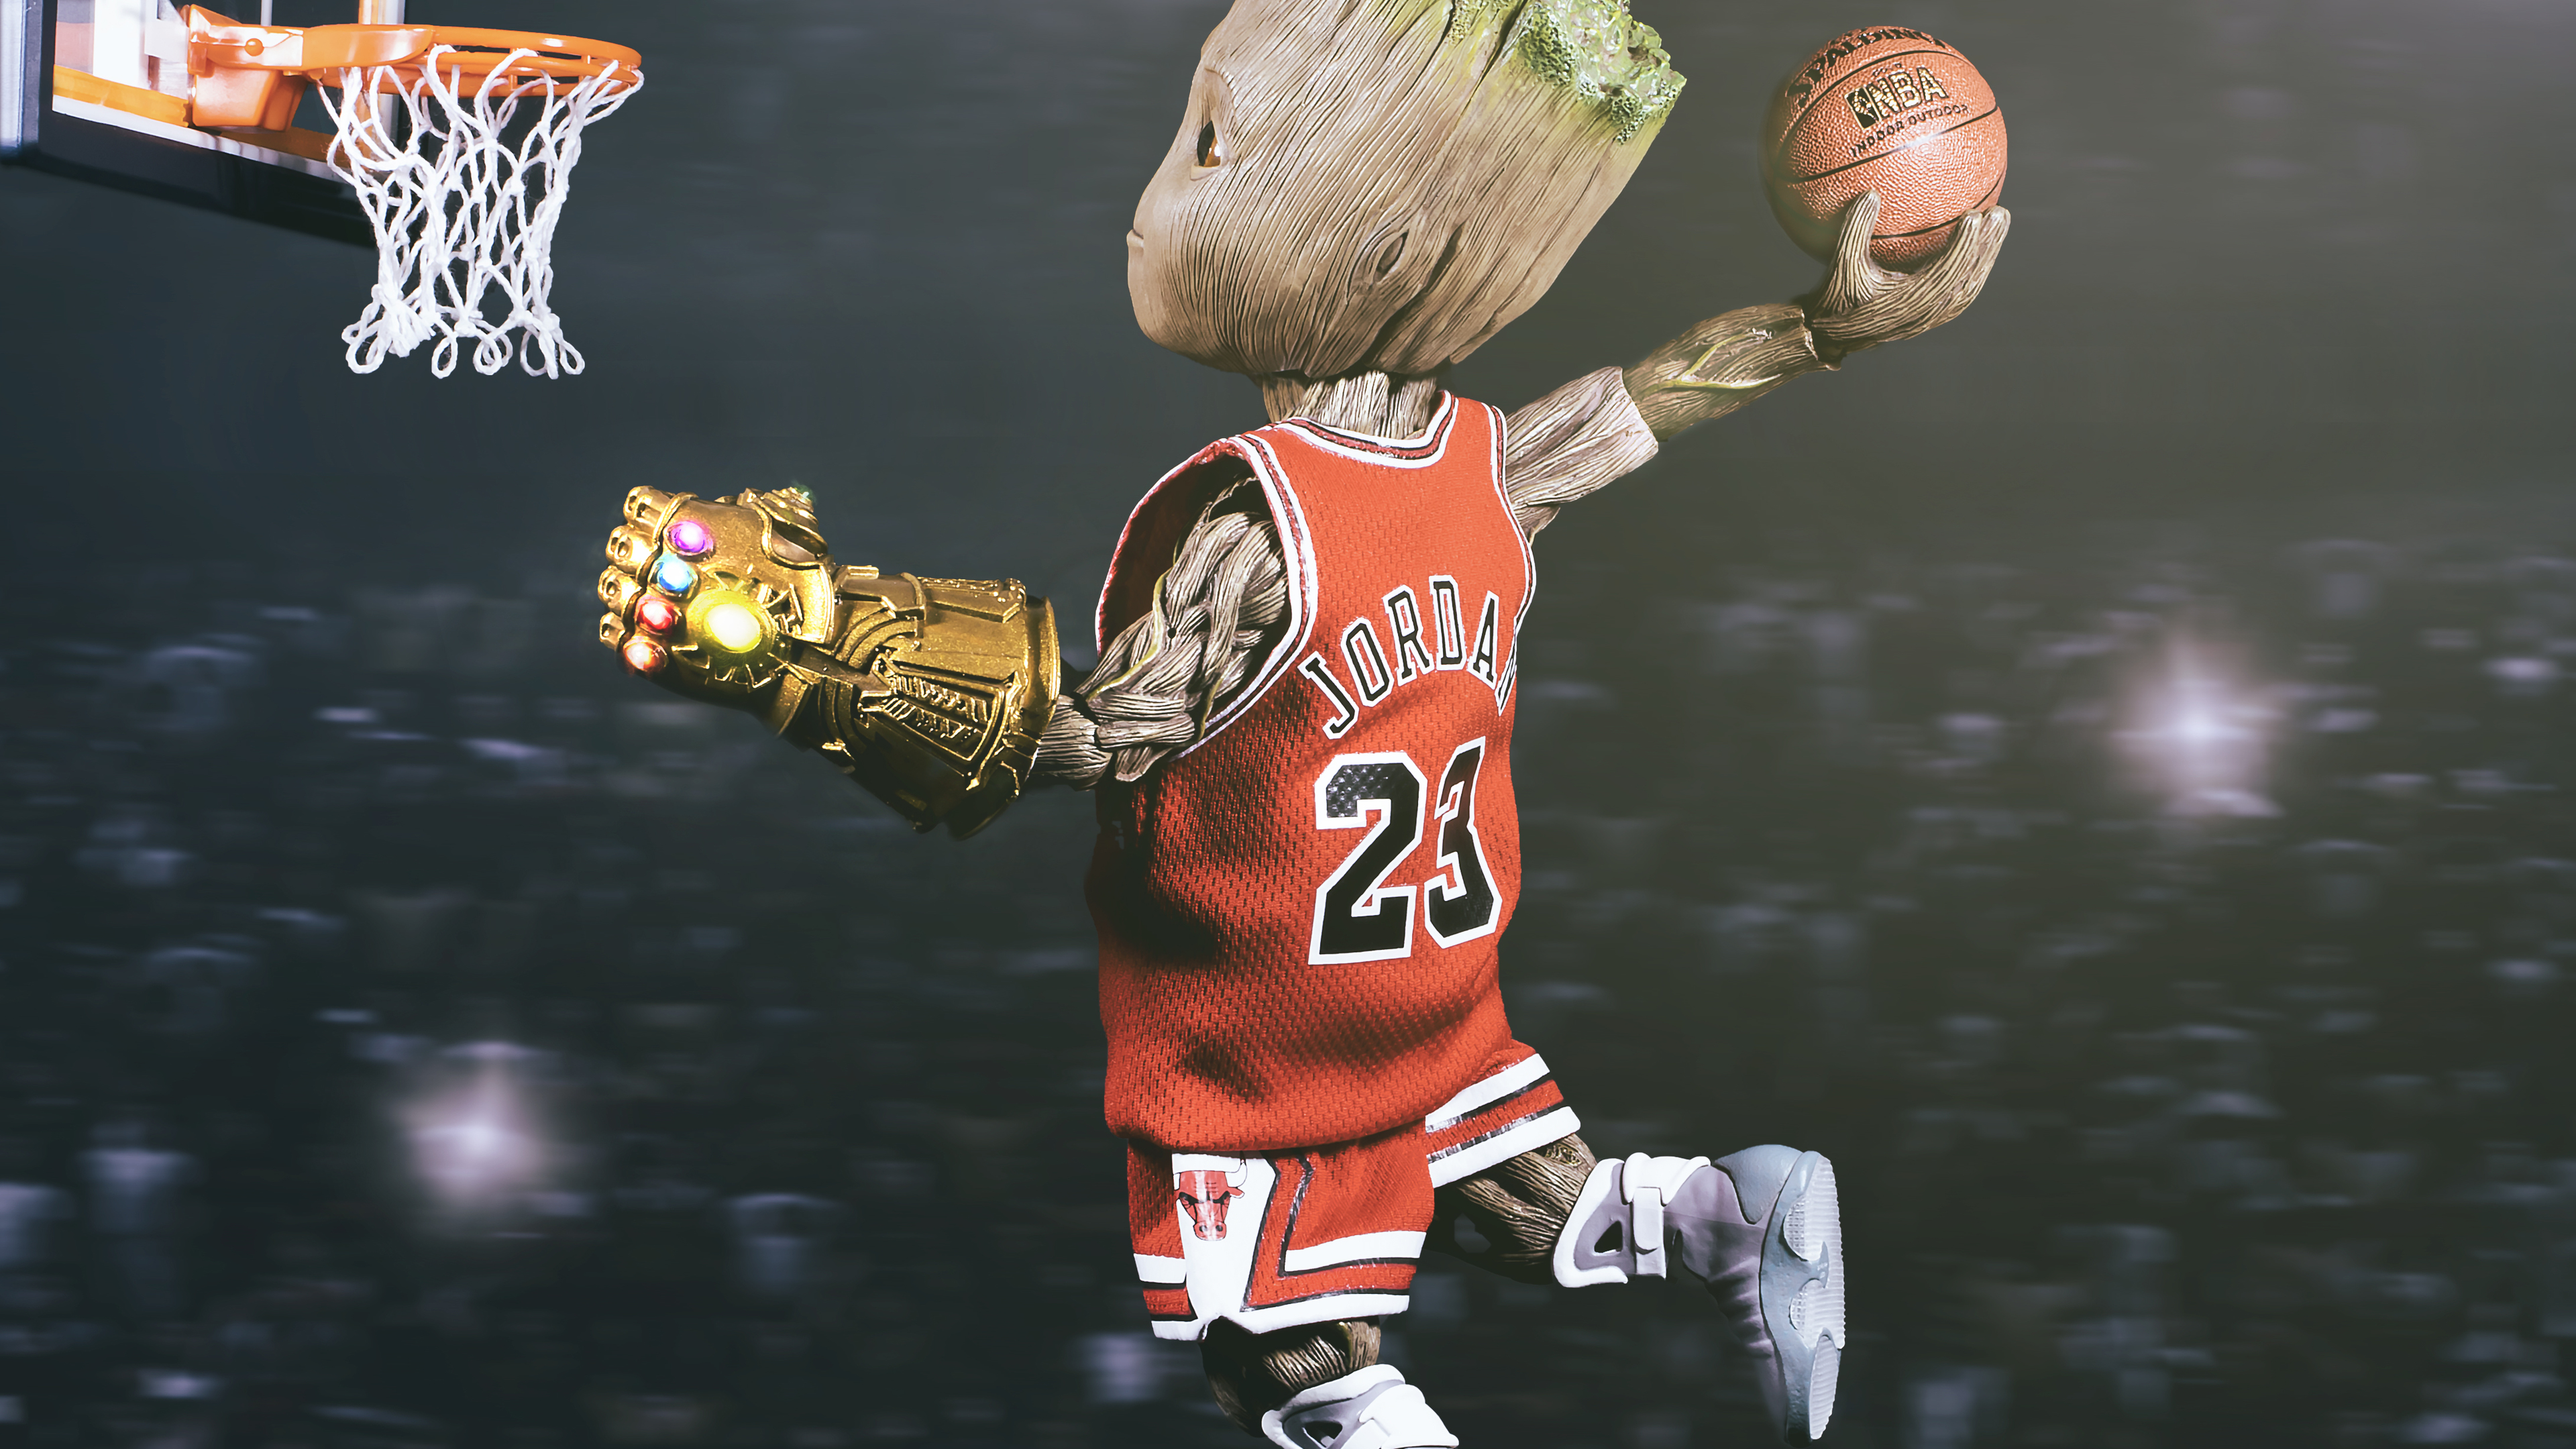 baby groot playing basketball 1540746385 - Baby Groot Playing Basketball - superheroes wallpapers, hd-wallpapers, basketball wallpapers, baby groot wallpapers, 4k-wallpapers